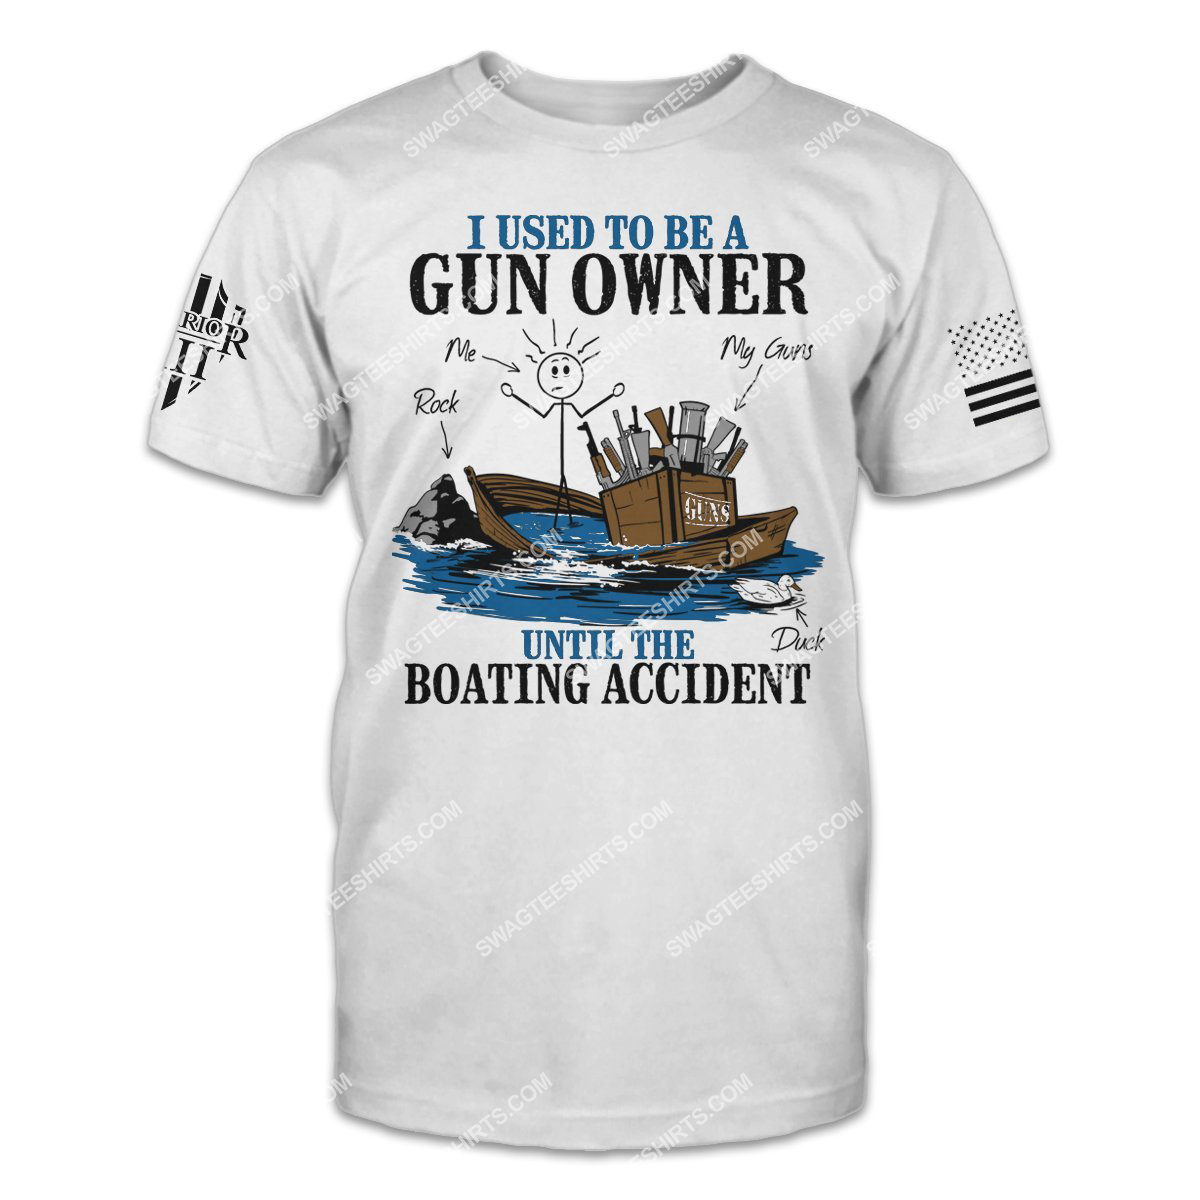 i used to be a gun owner until the boating accident politics shirt 1 - Copy (2)